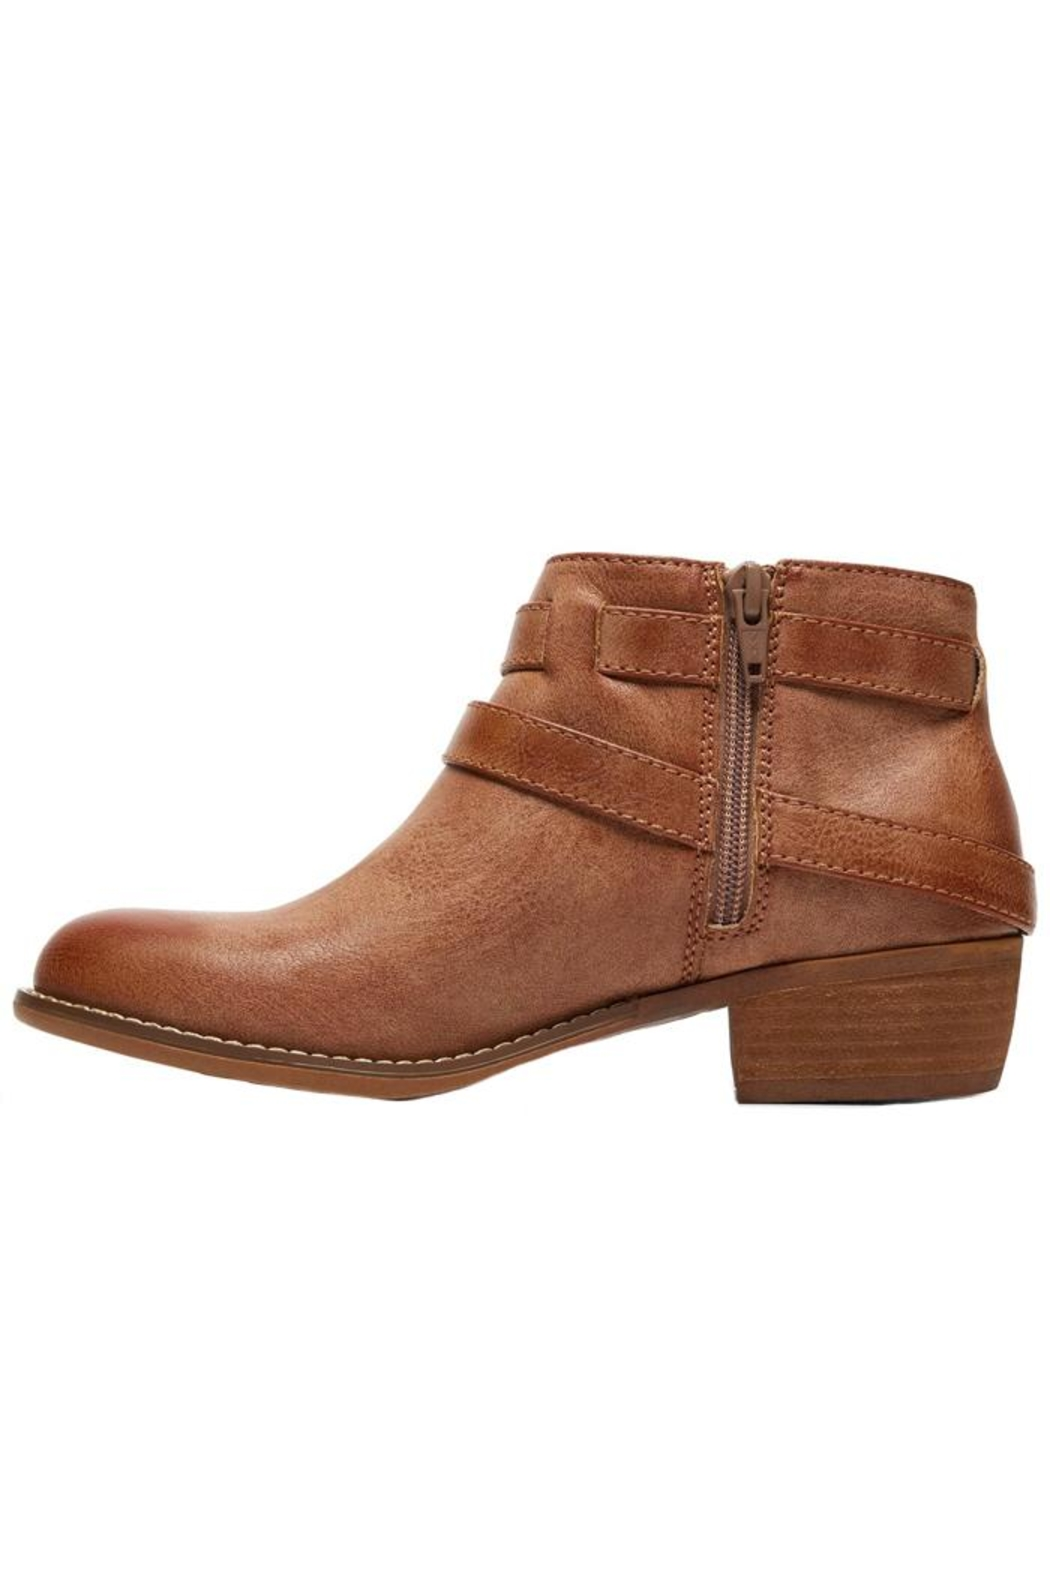 Roxy Abel Boots - Side Cropped Image